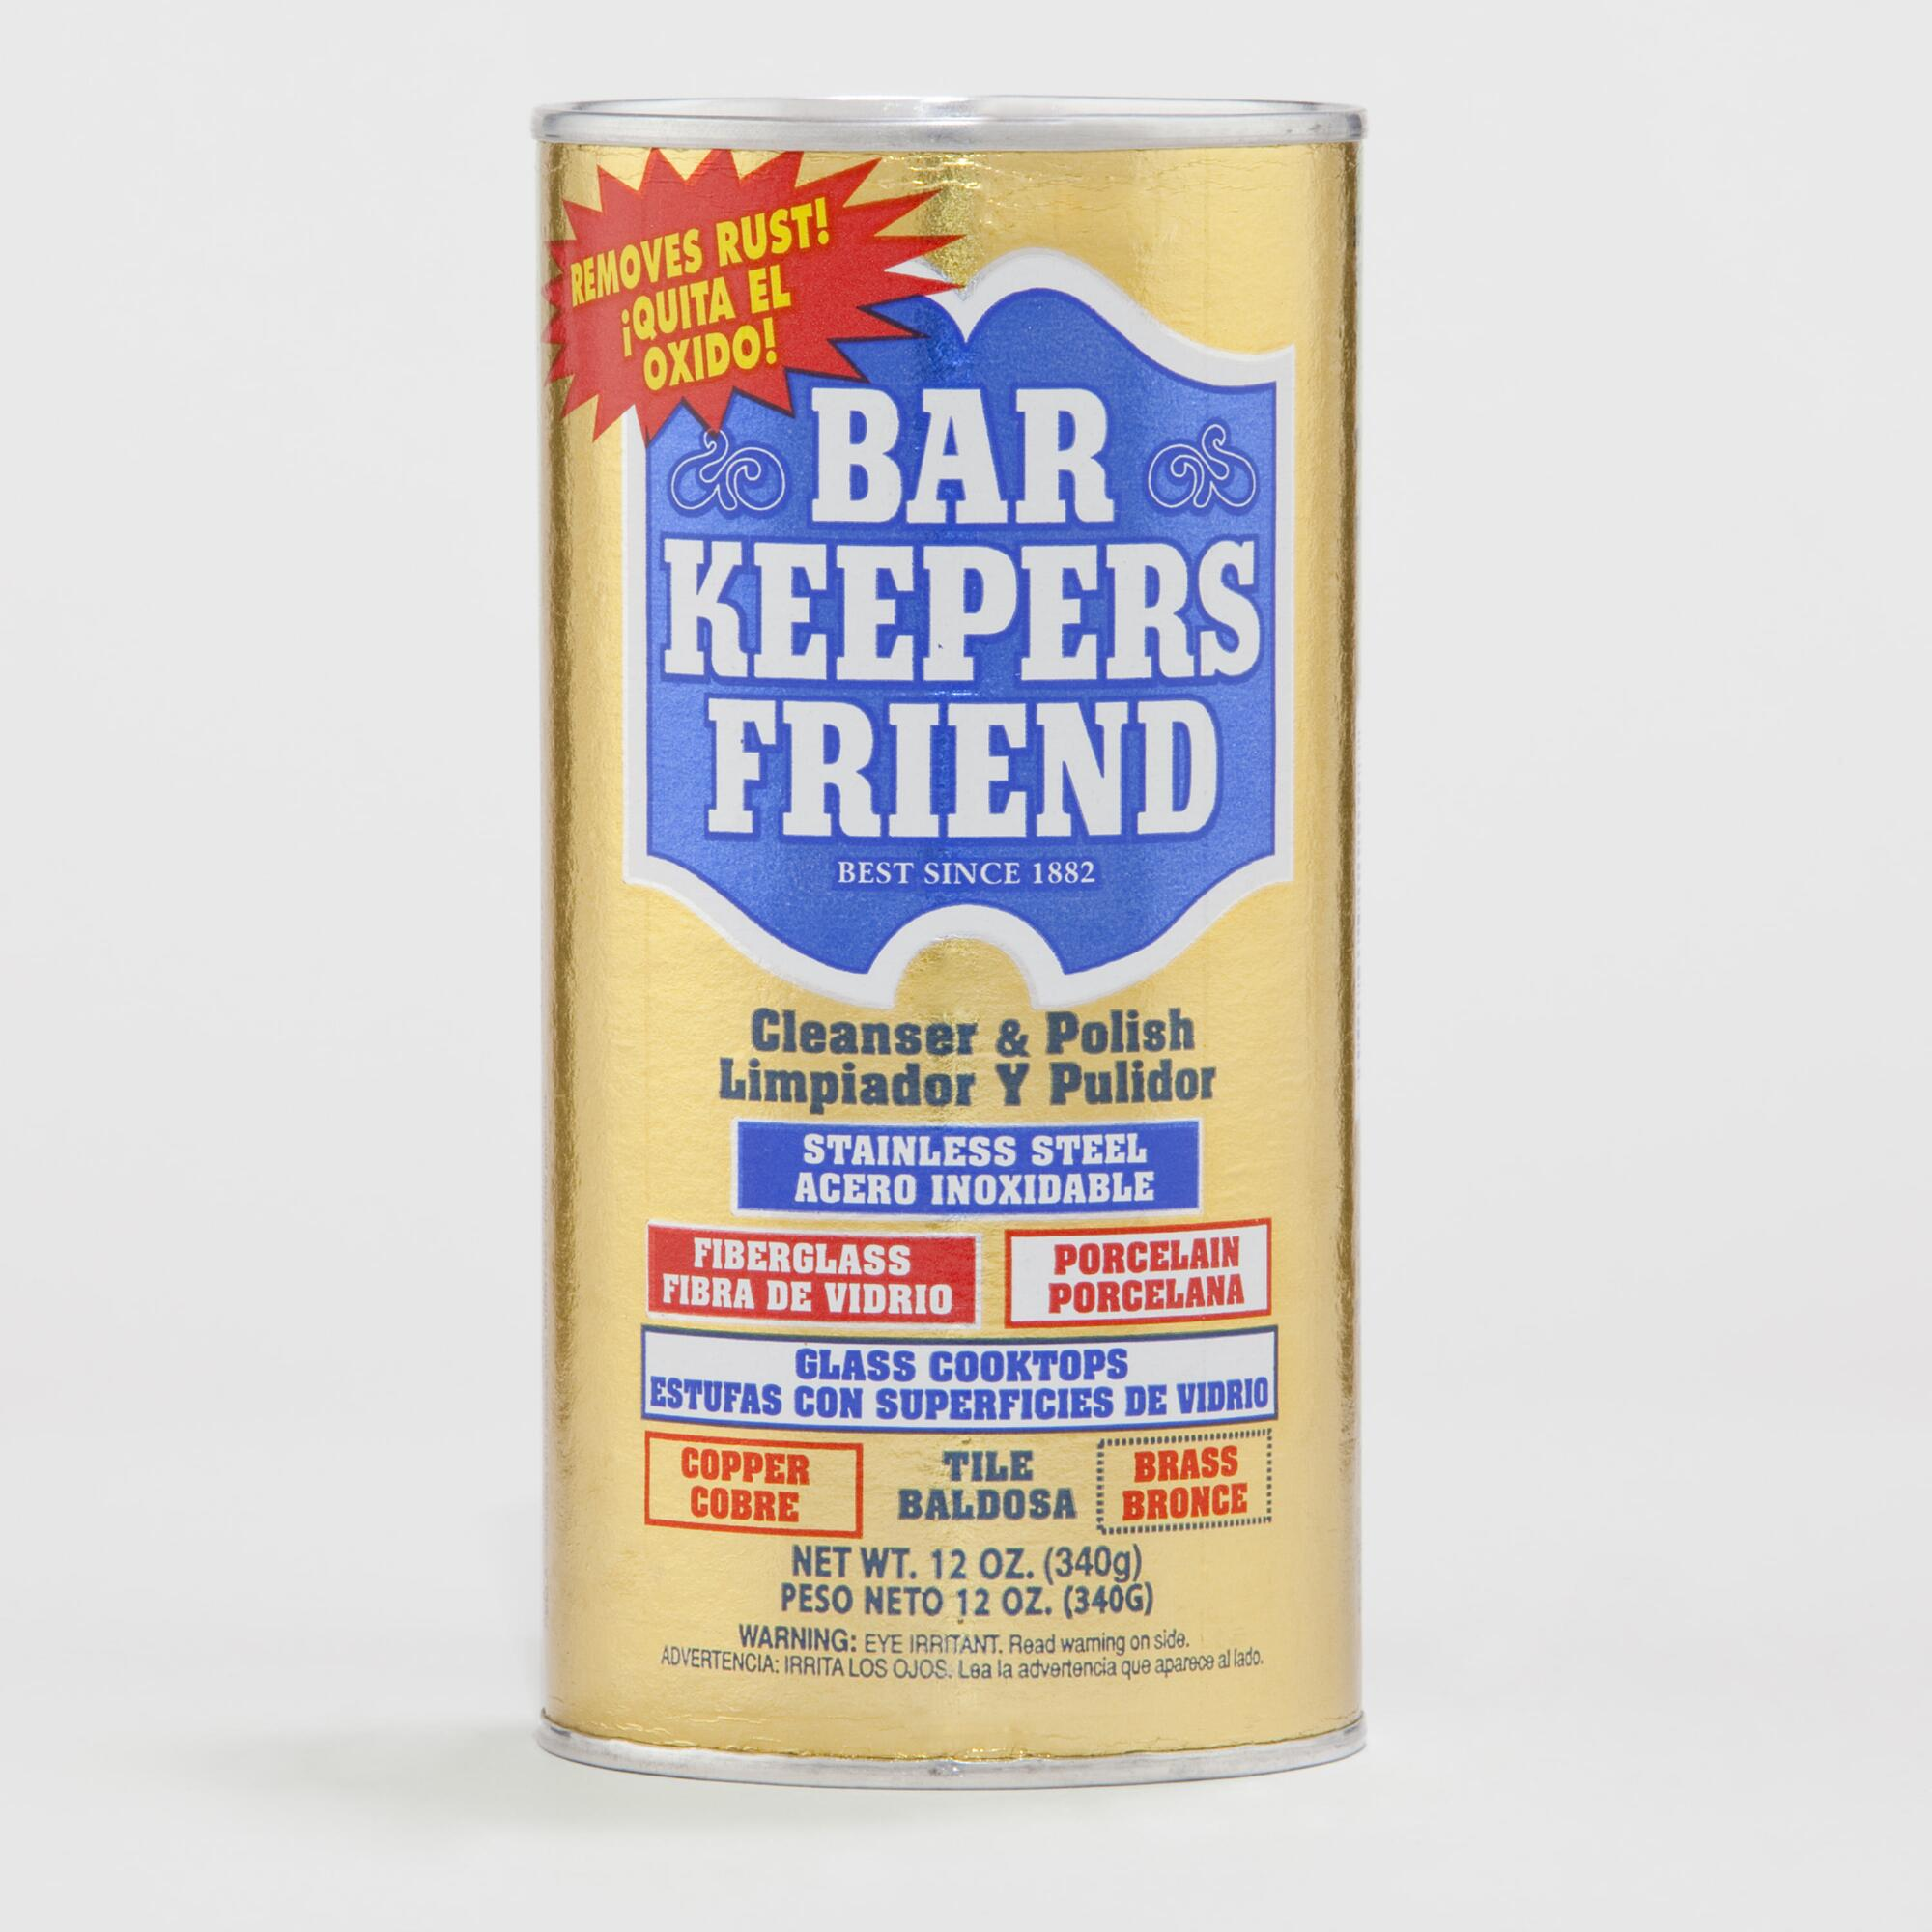 Bar Keepers Friend Cleanser and Polish, 12 Ounce Bar Keepers Friend Bar Keepers Friend MORE oz. Spray + Foam Cleaner With 2 Scotch-Brite Non-Scratch Scrub Sponges Multipurpose Cleaner. by Bar Keepers Friend. $ $ 13 FREE Shipping on eligible orders. out of 5 stars